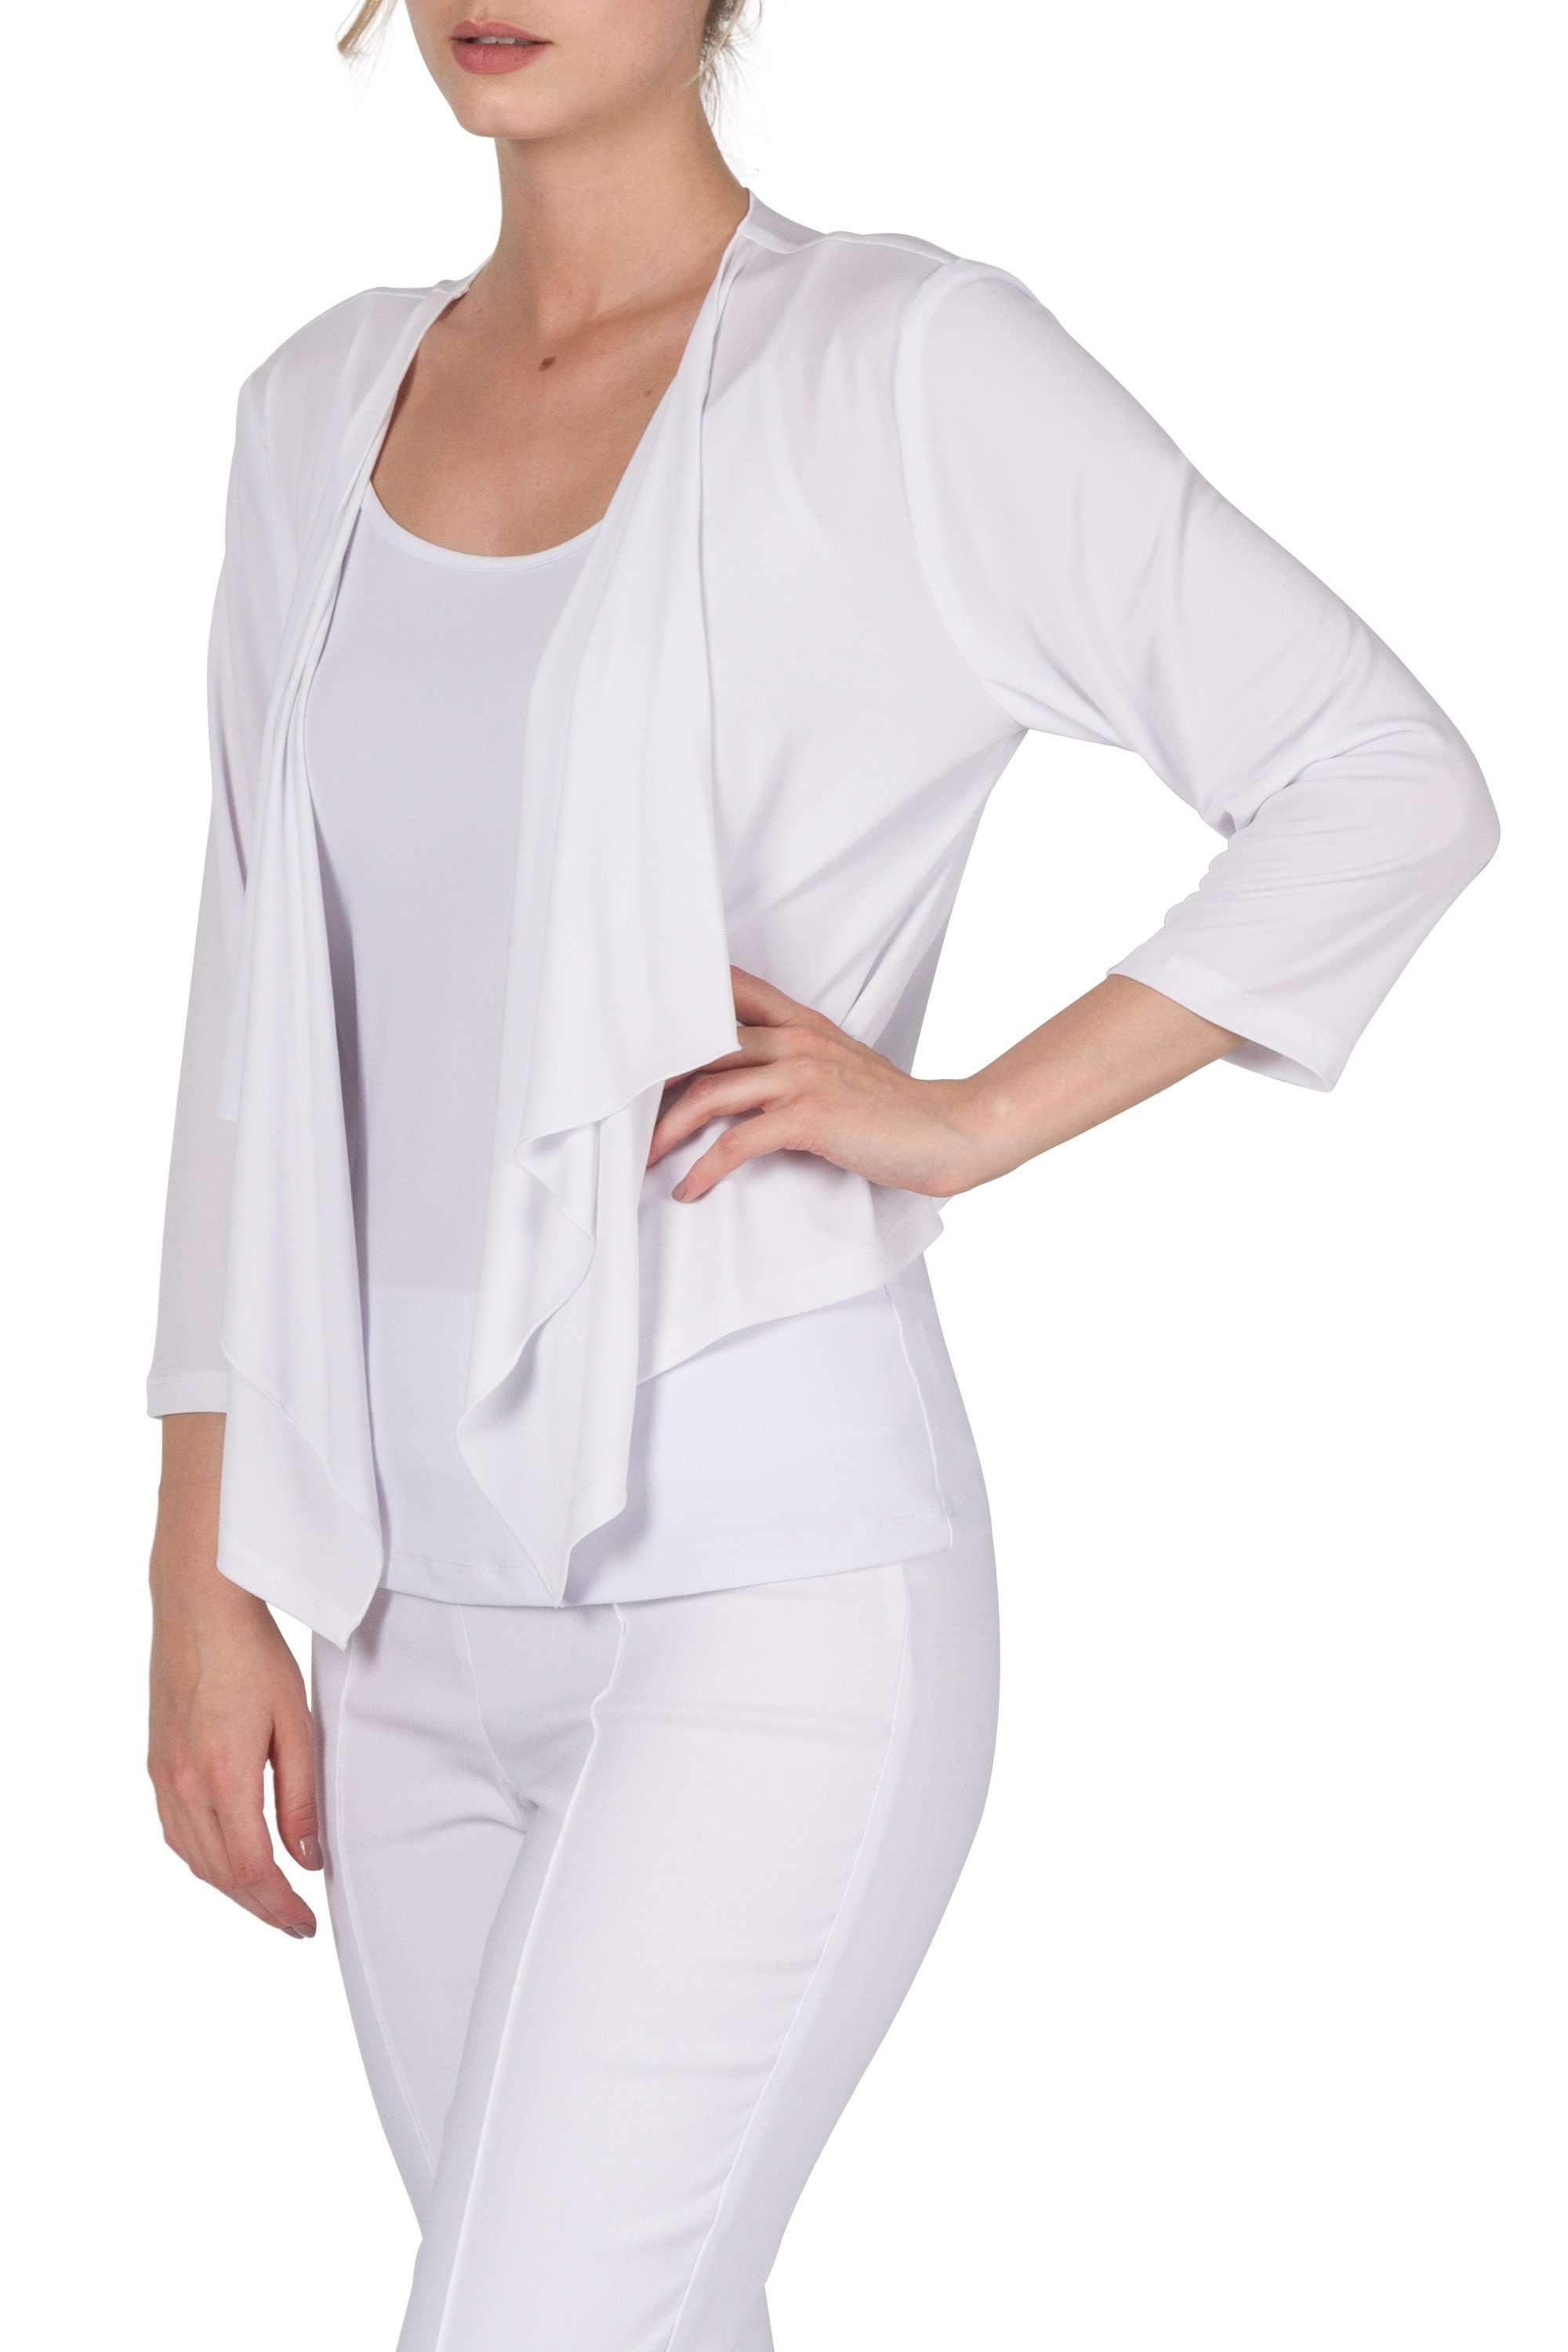 White Bolero Jacket in Quality Stretch Knit Fabric Made in Canada - Yvonne Marie